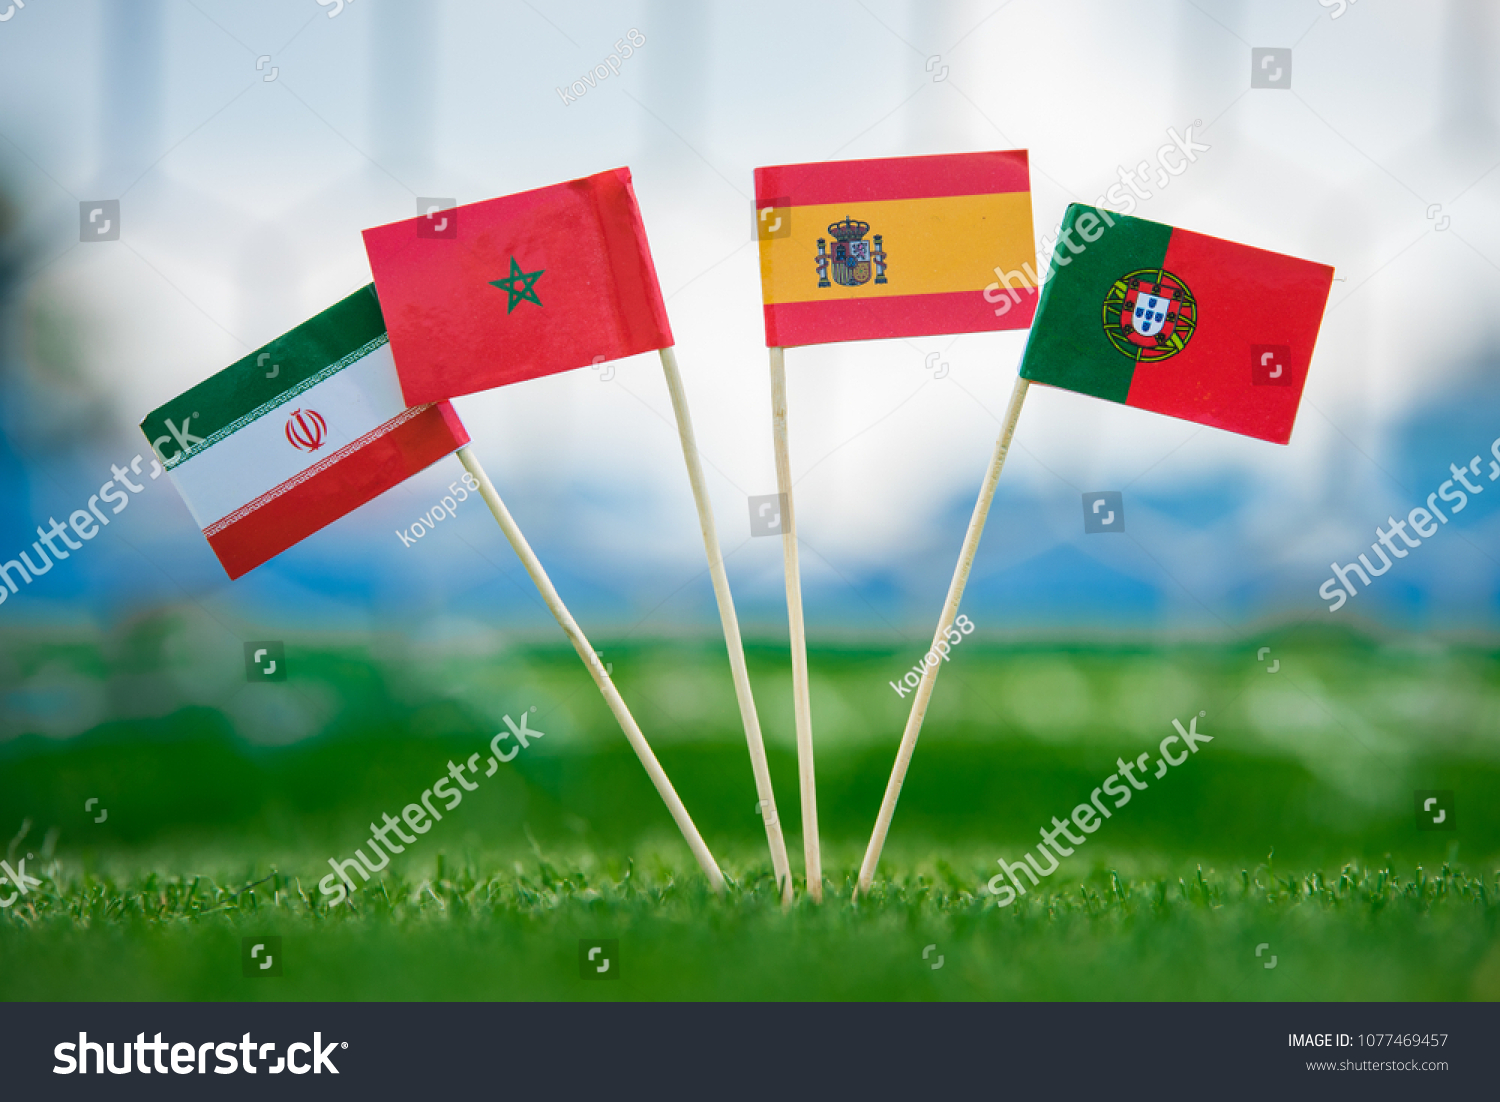 National Flags of Portugal, Spain, Morocco, IR Iran. Flags on green grass on football stadium. Group B.  #1077469457